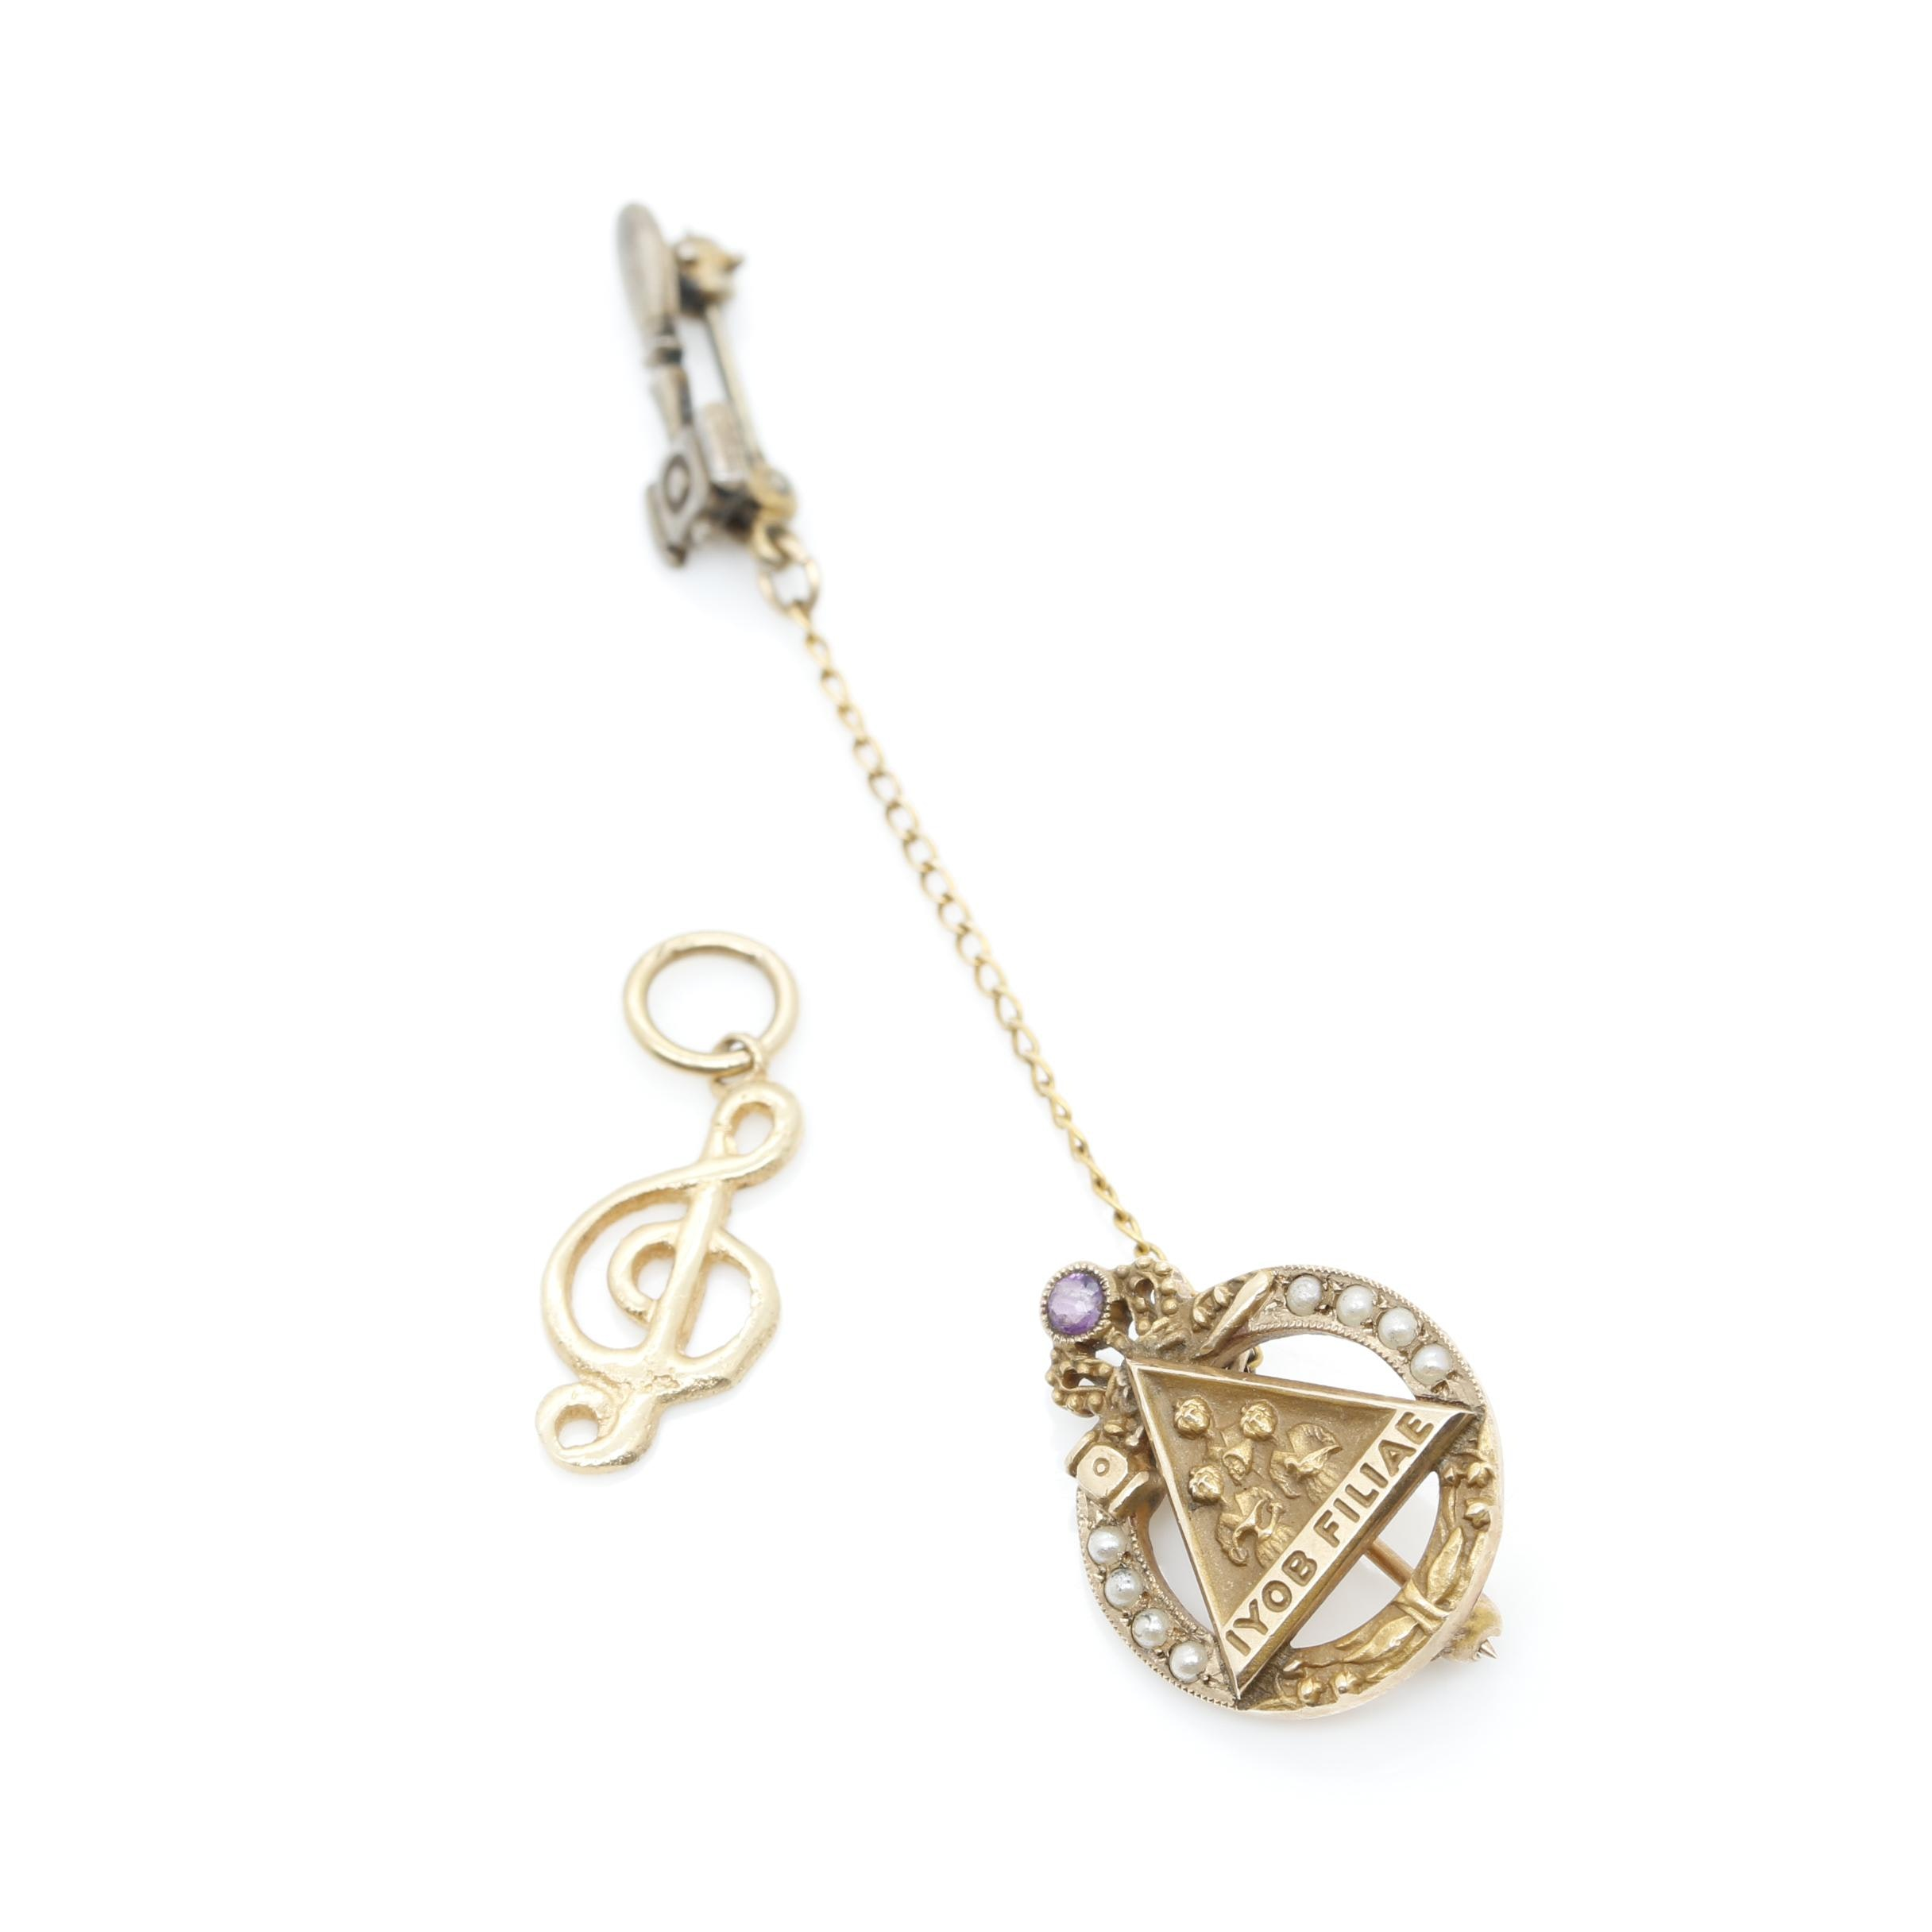 10K Gold and Sterling Silver Amethyst and Imitation Pearl Pin and 14K Charm